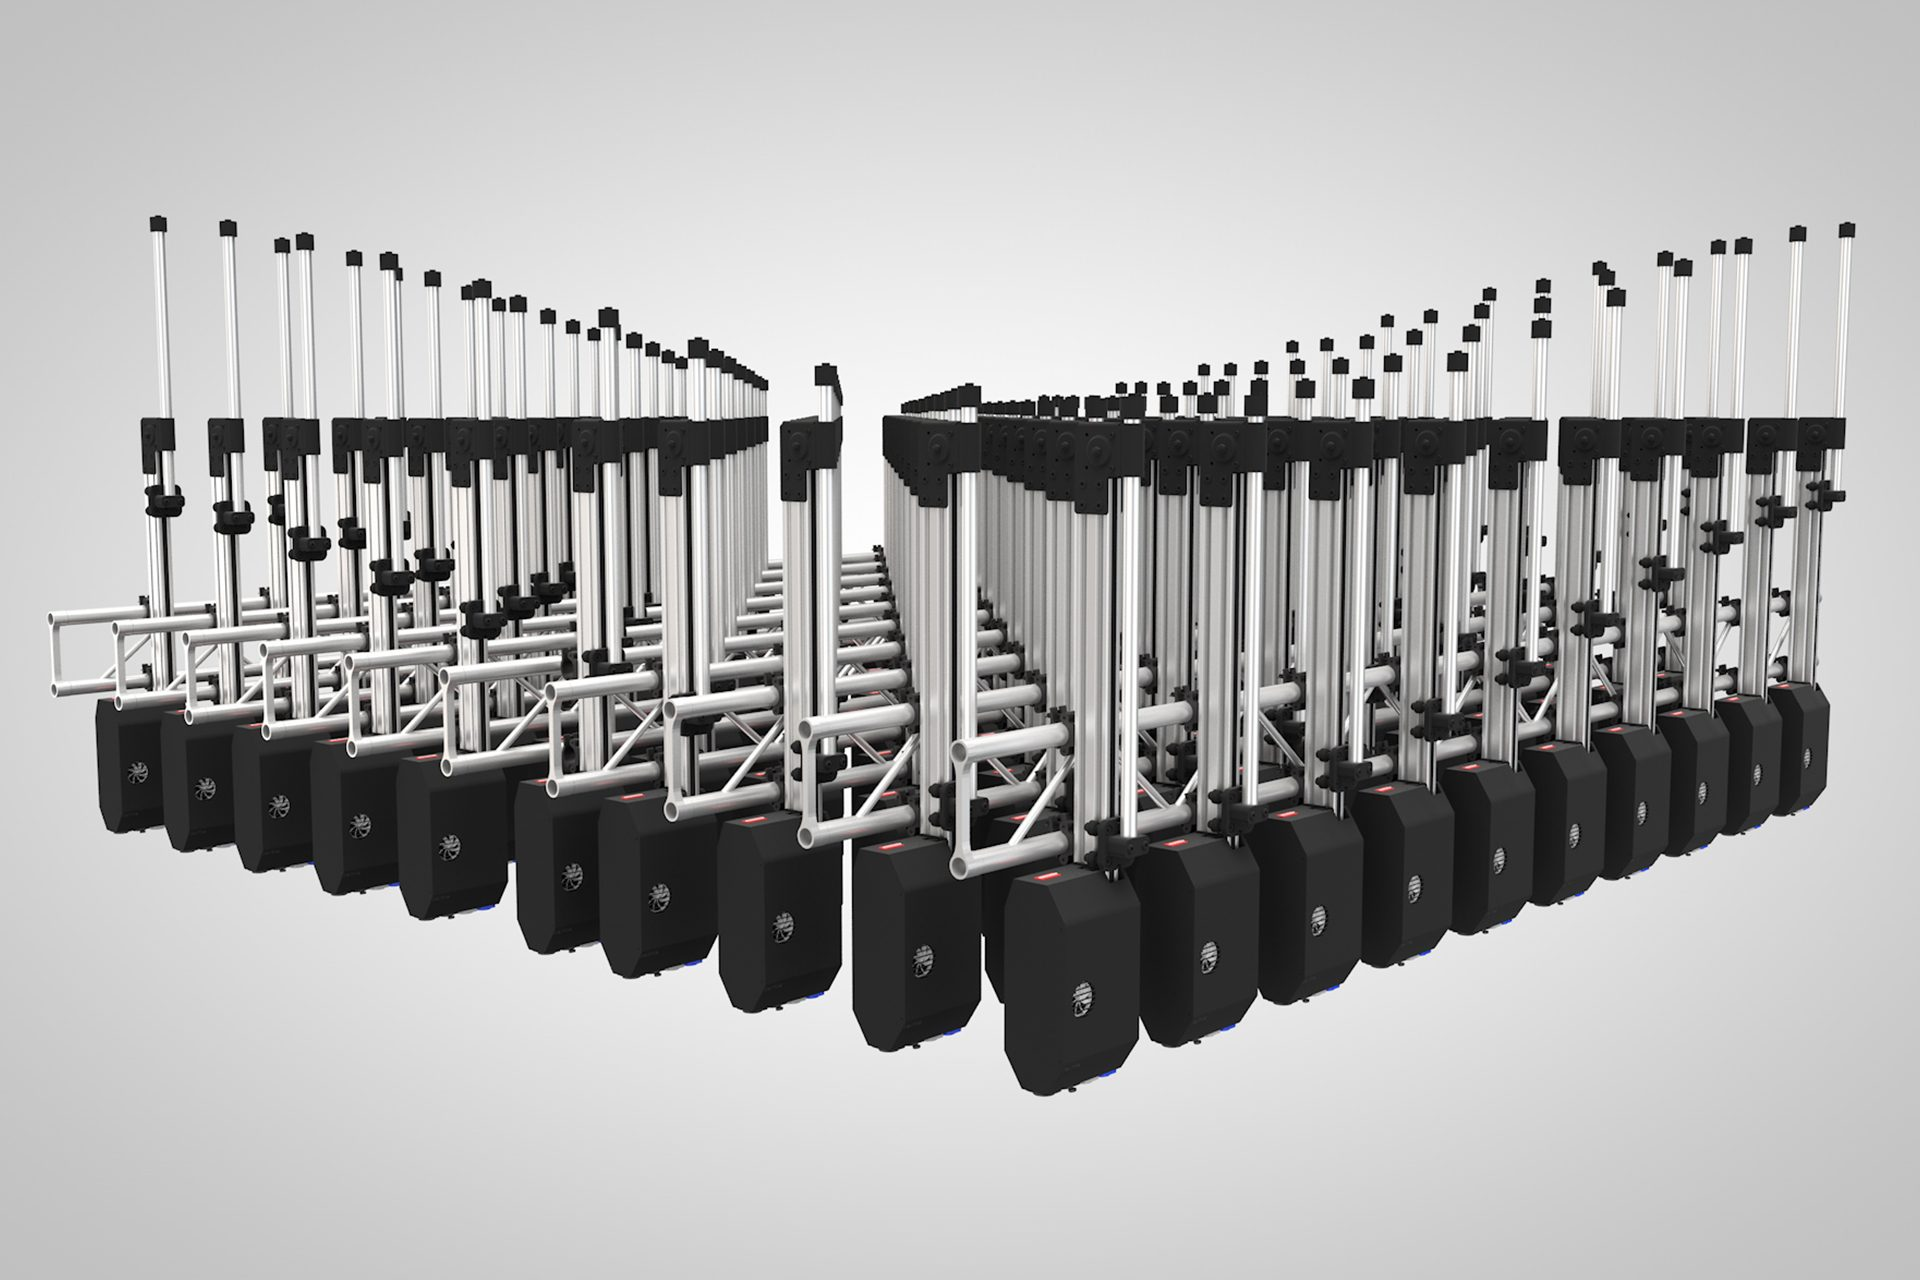 Renderings with an array of 100 DMX Linear Actuators